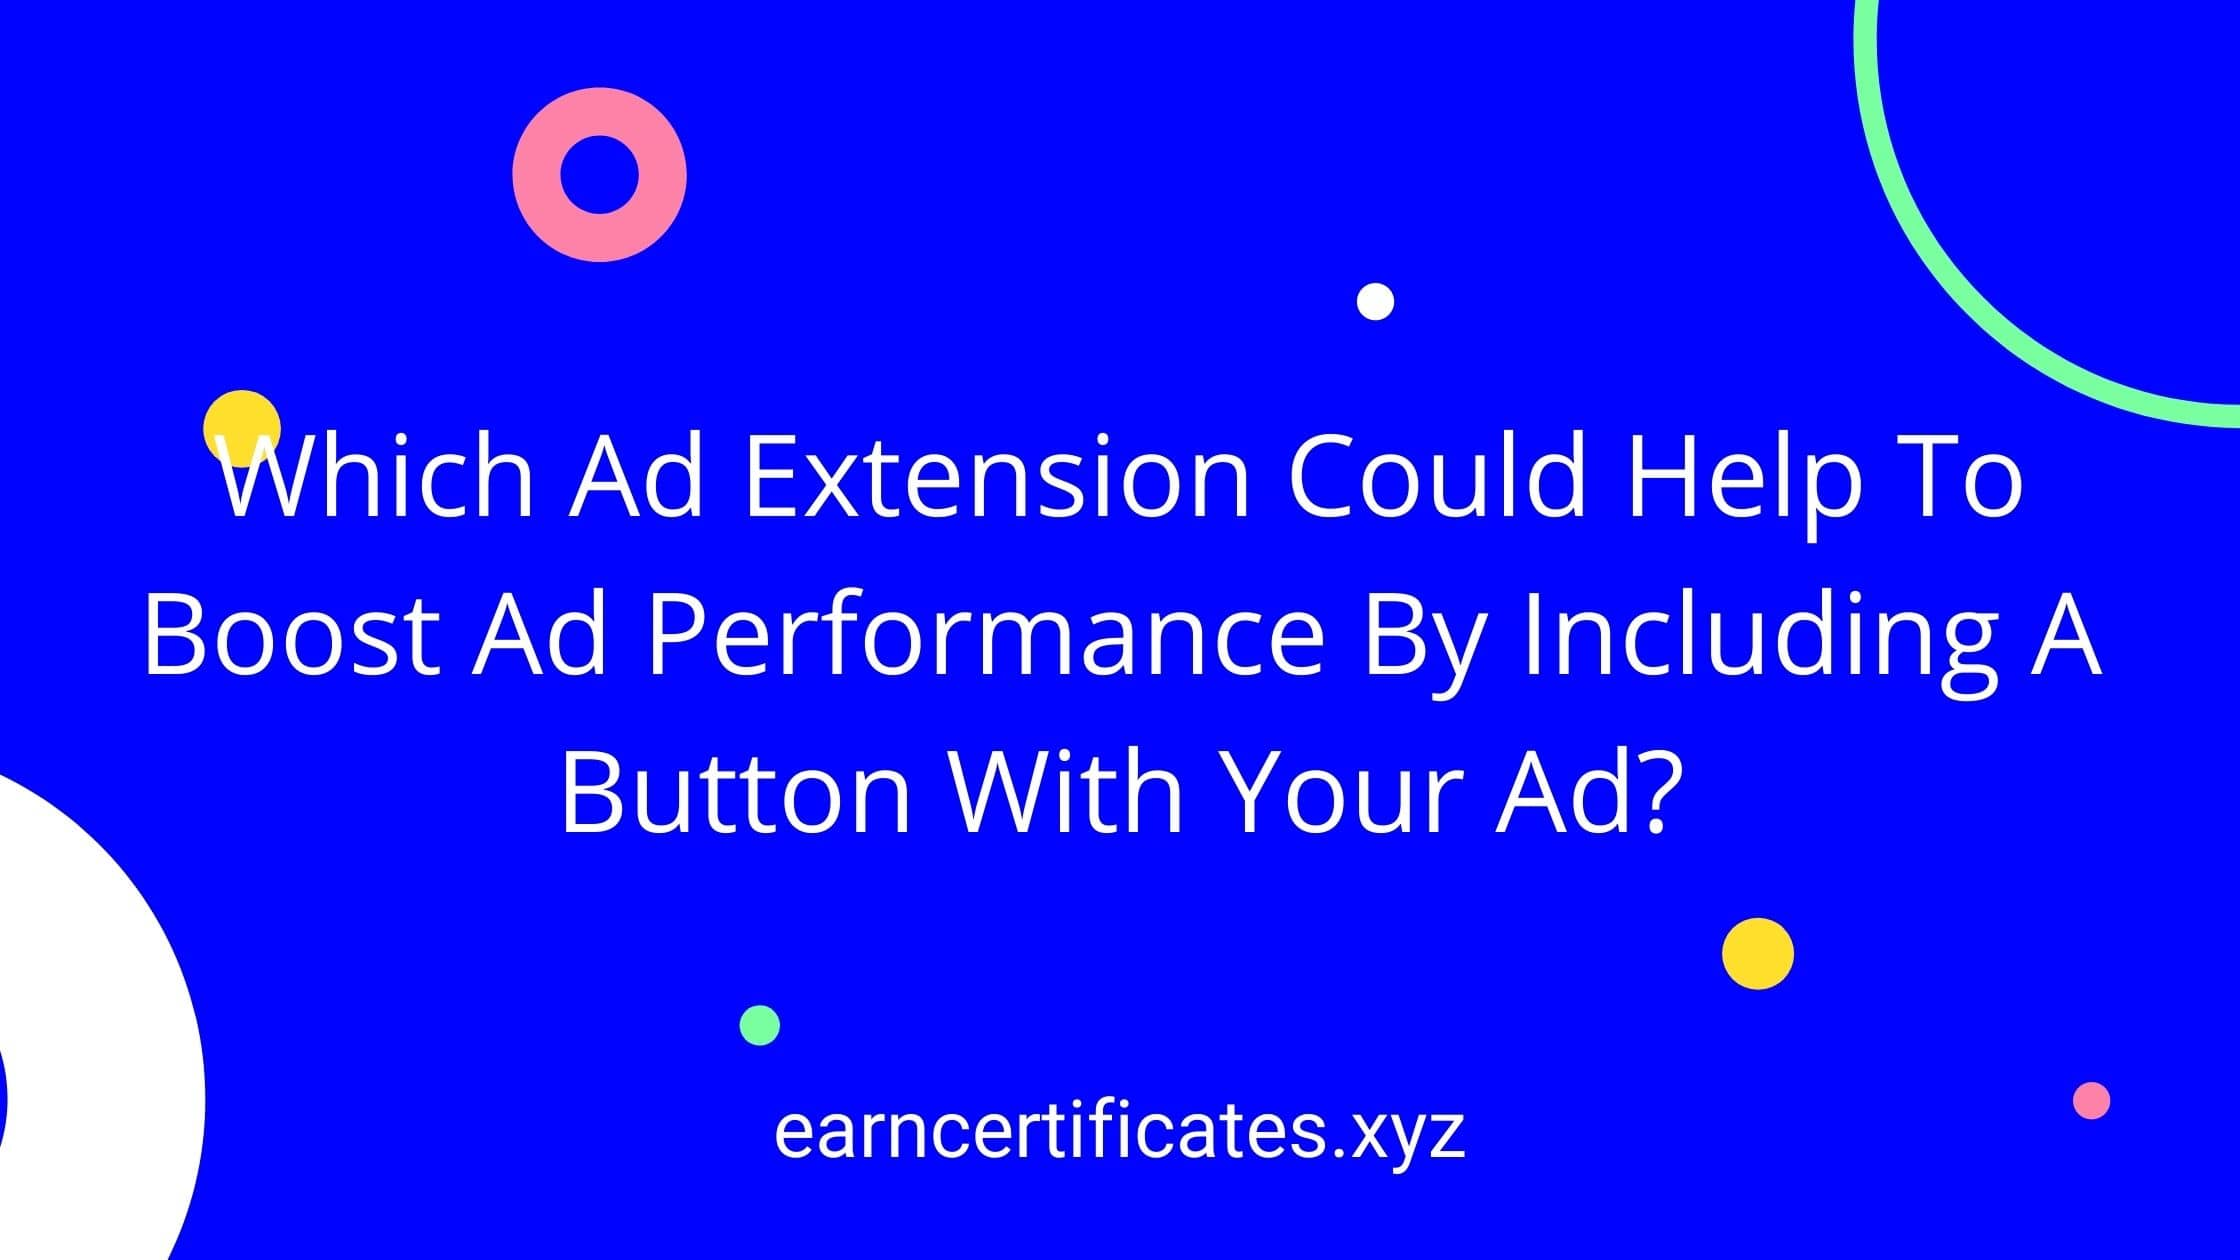 Which Ad Extension Could Help To Boost Ad Performance By Including A Button With Your Ad?